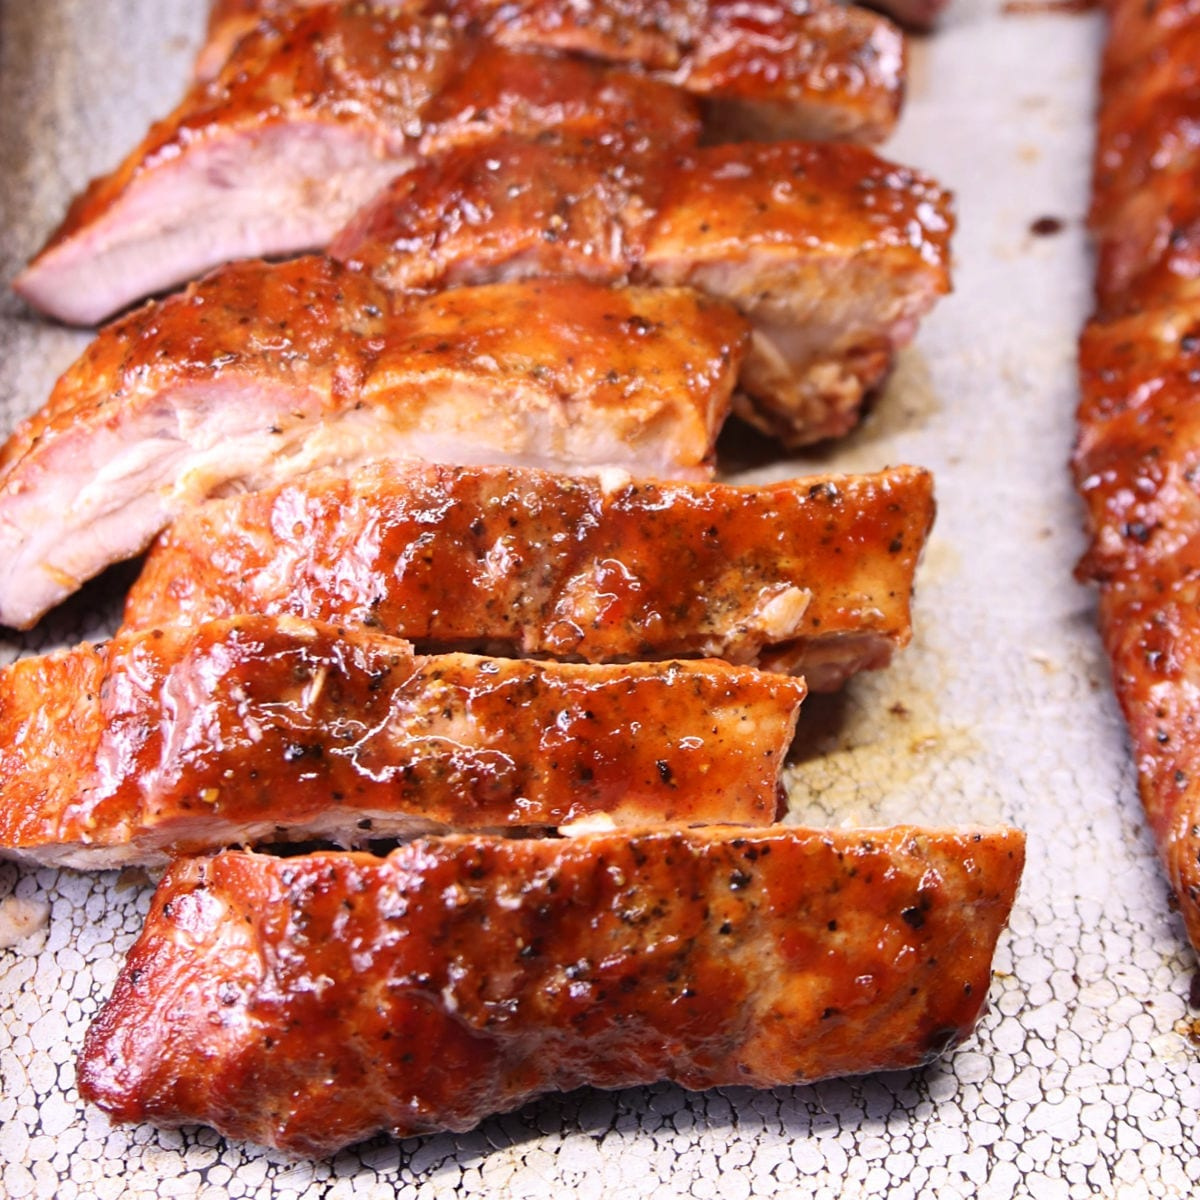 Maple BBQ Baby Back Ribs sliced on a baking sheet